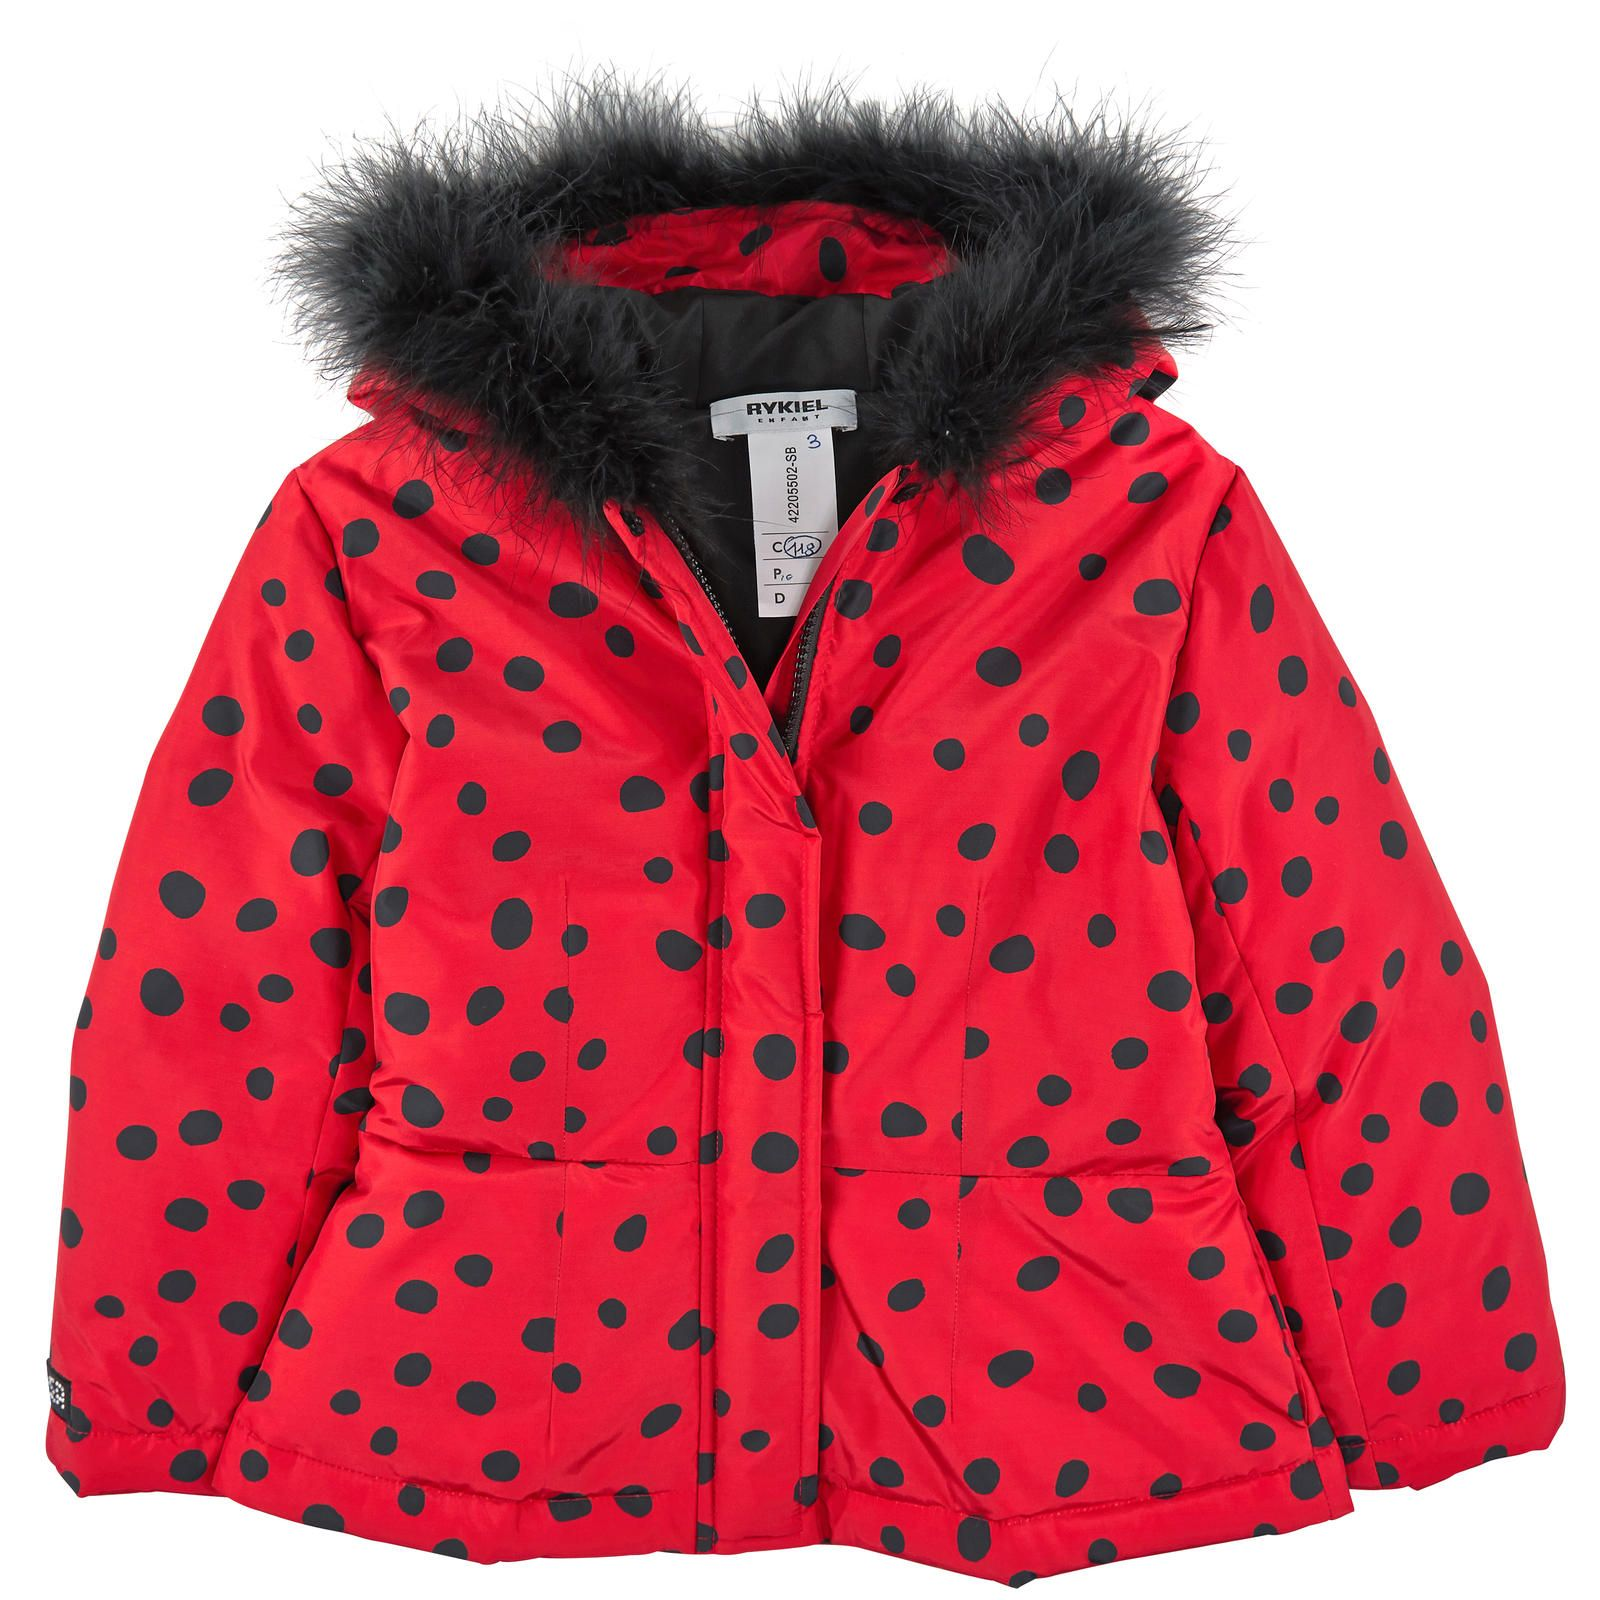 Spotted waterproof coat with a synthetic lining. Polyester padding. Hood with a false fur trim. Zipper and snap buttons on the front. Slit pockets on the sides. Machine washable at 30°C. - 275,00 €